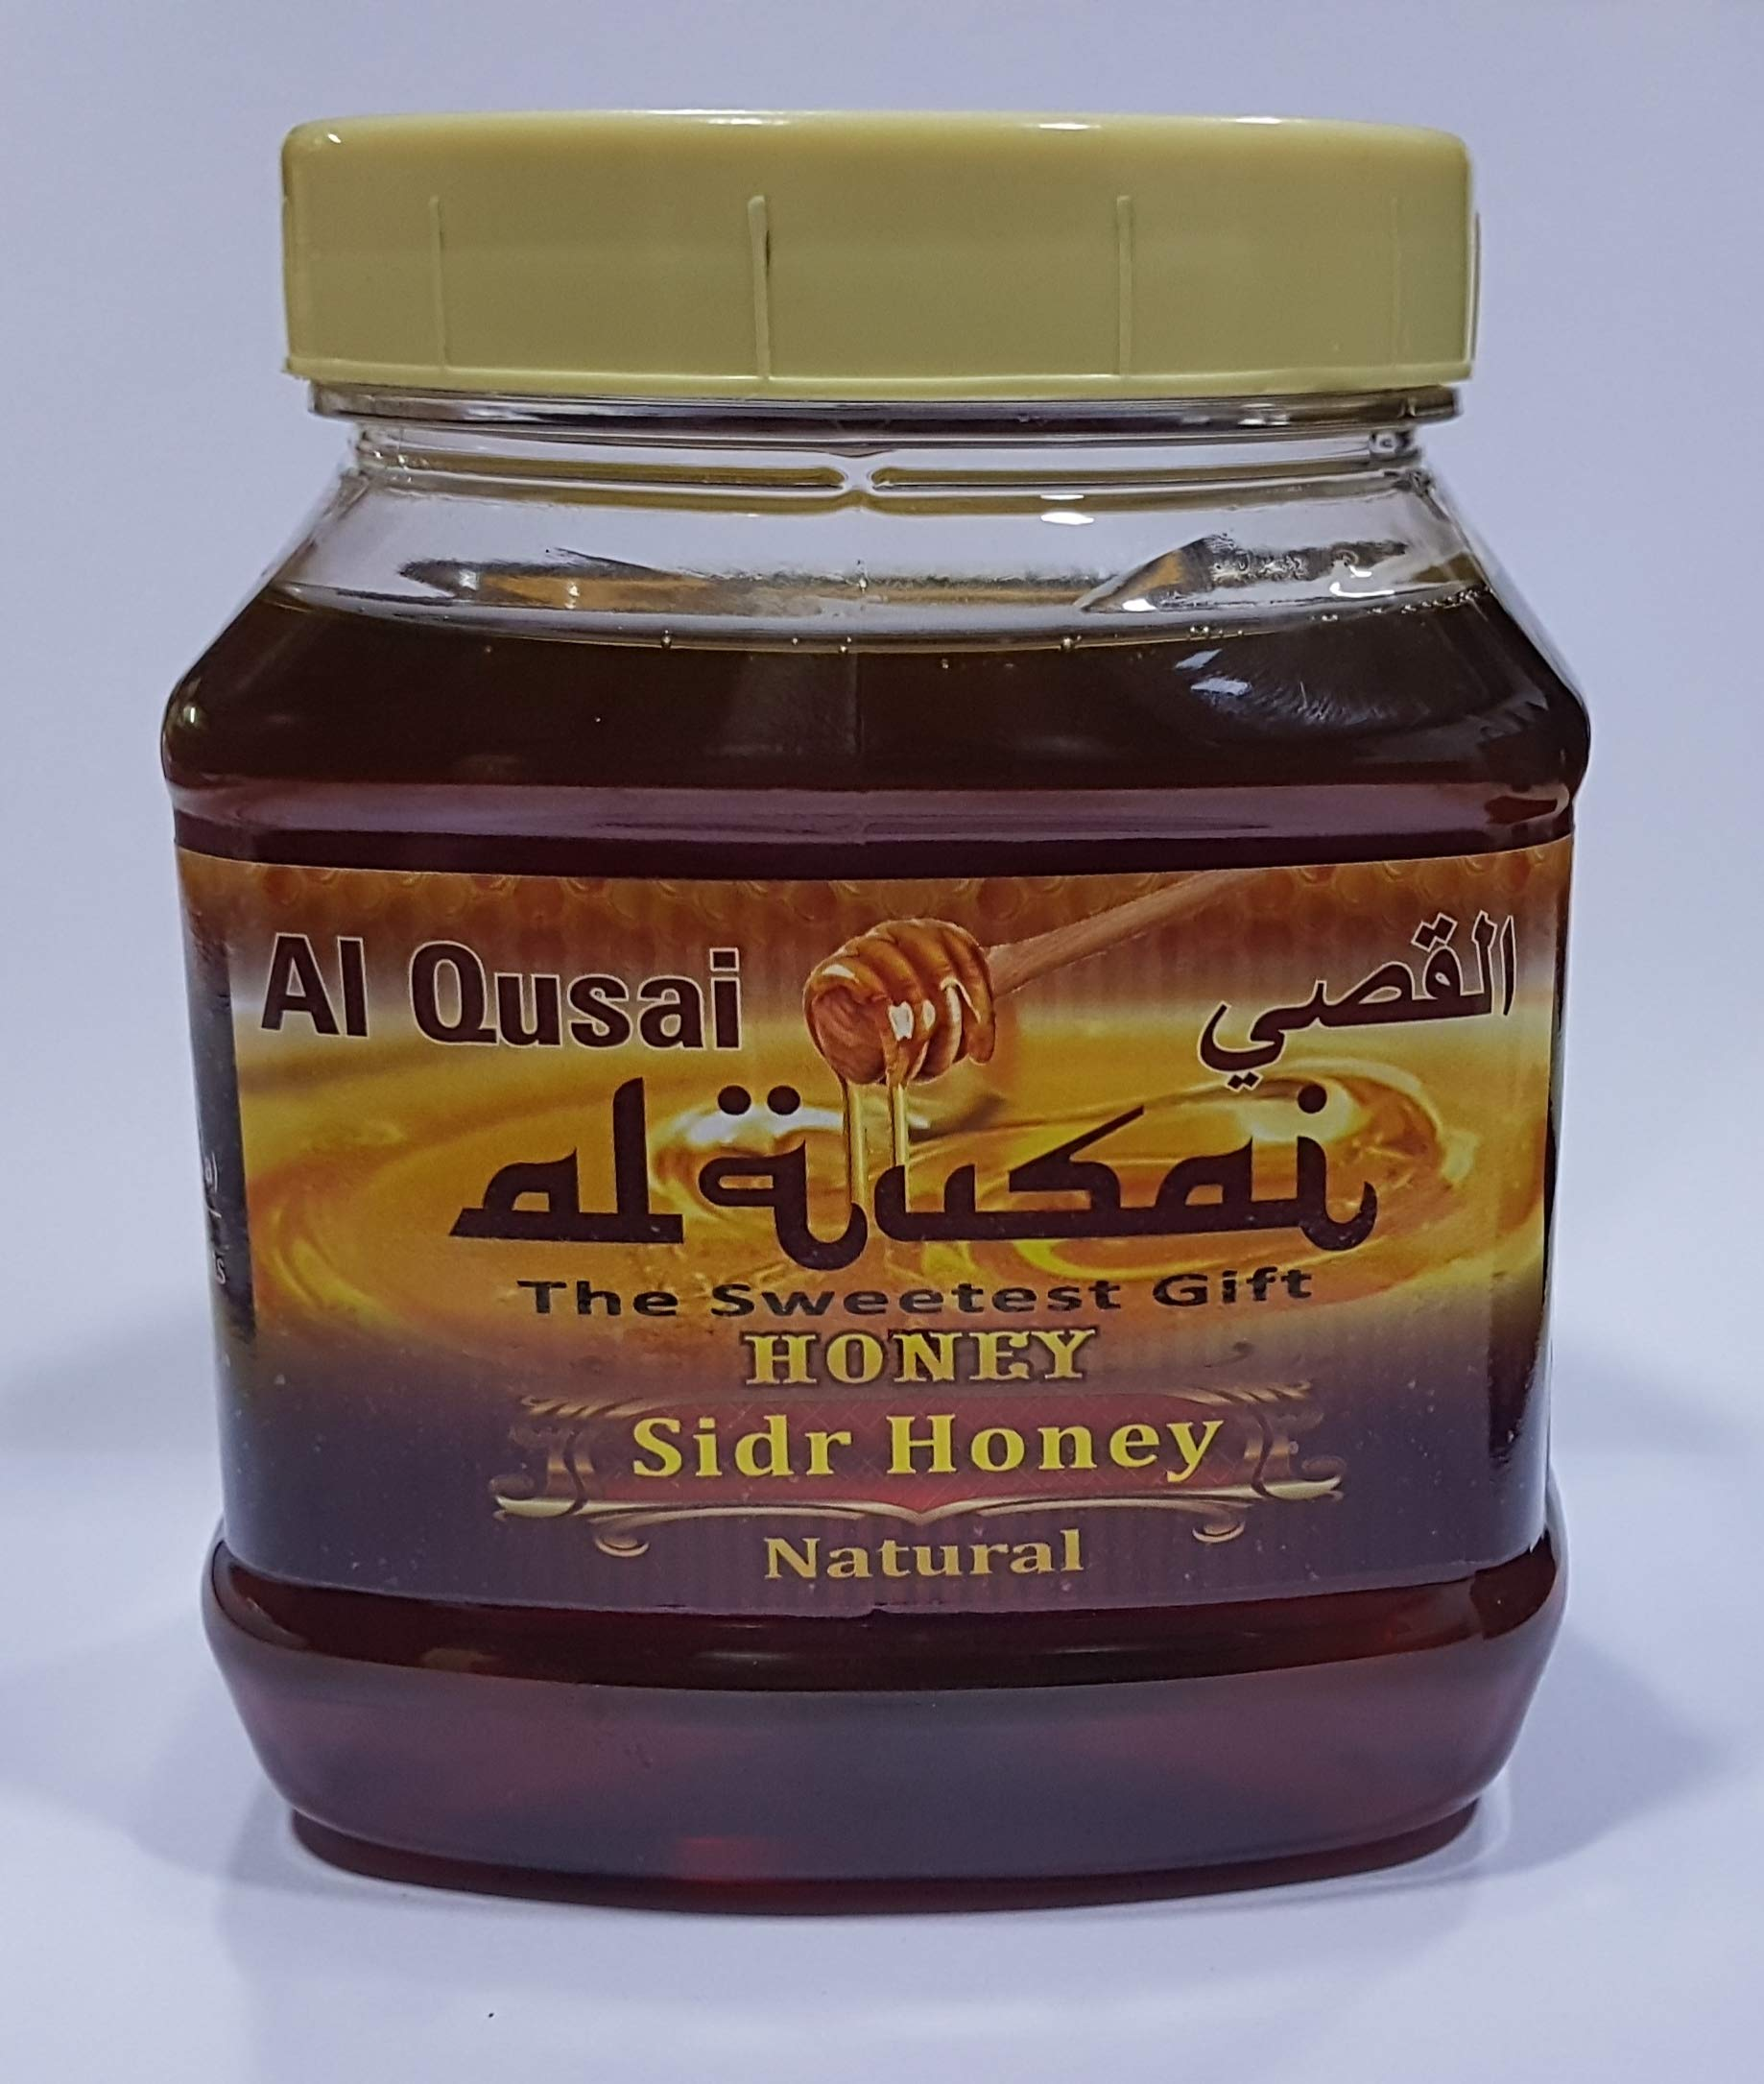 Amazon price history for Al Qusai Pure Sidr Honey, 1kg in Pet Bottle, Stay Fit & Young